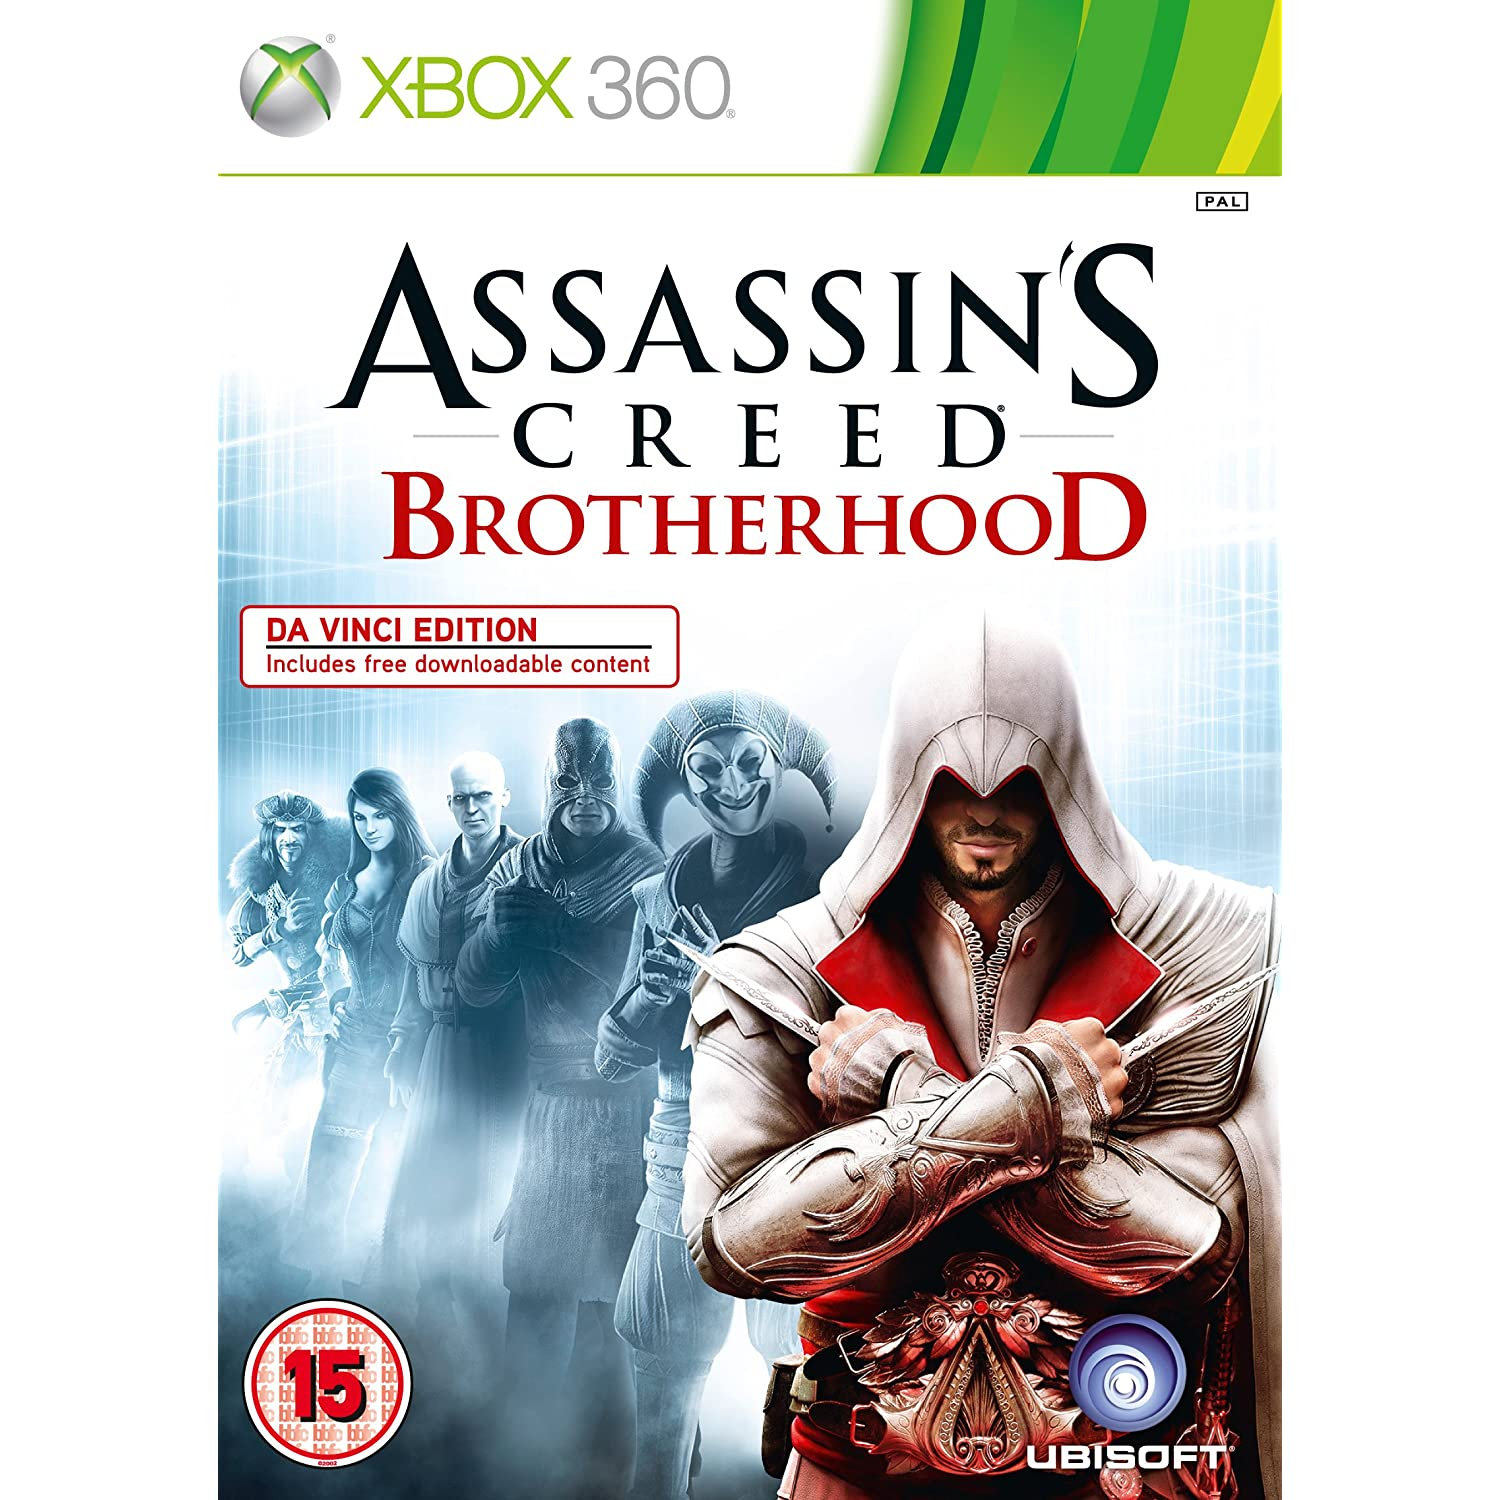 Assassins creed brotherhood - da vinci edition